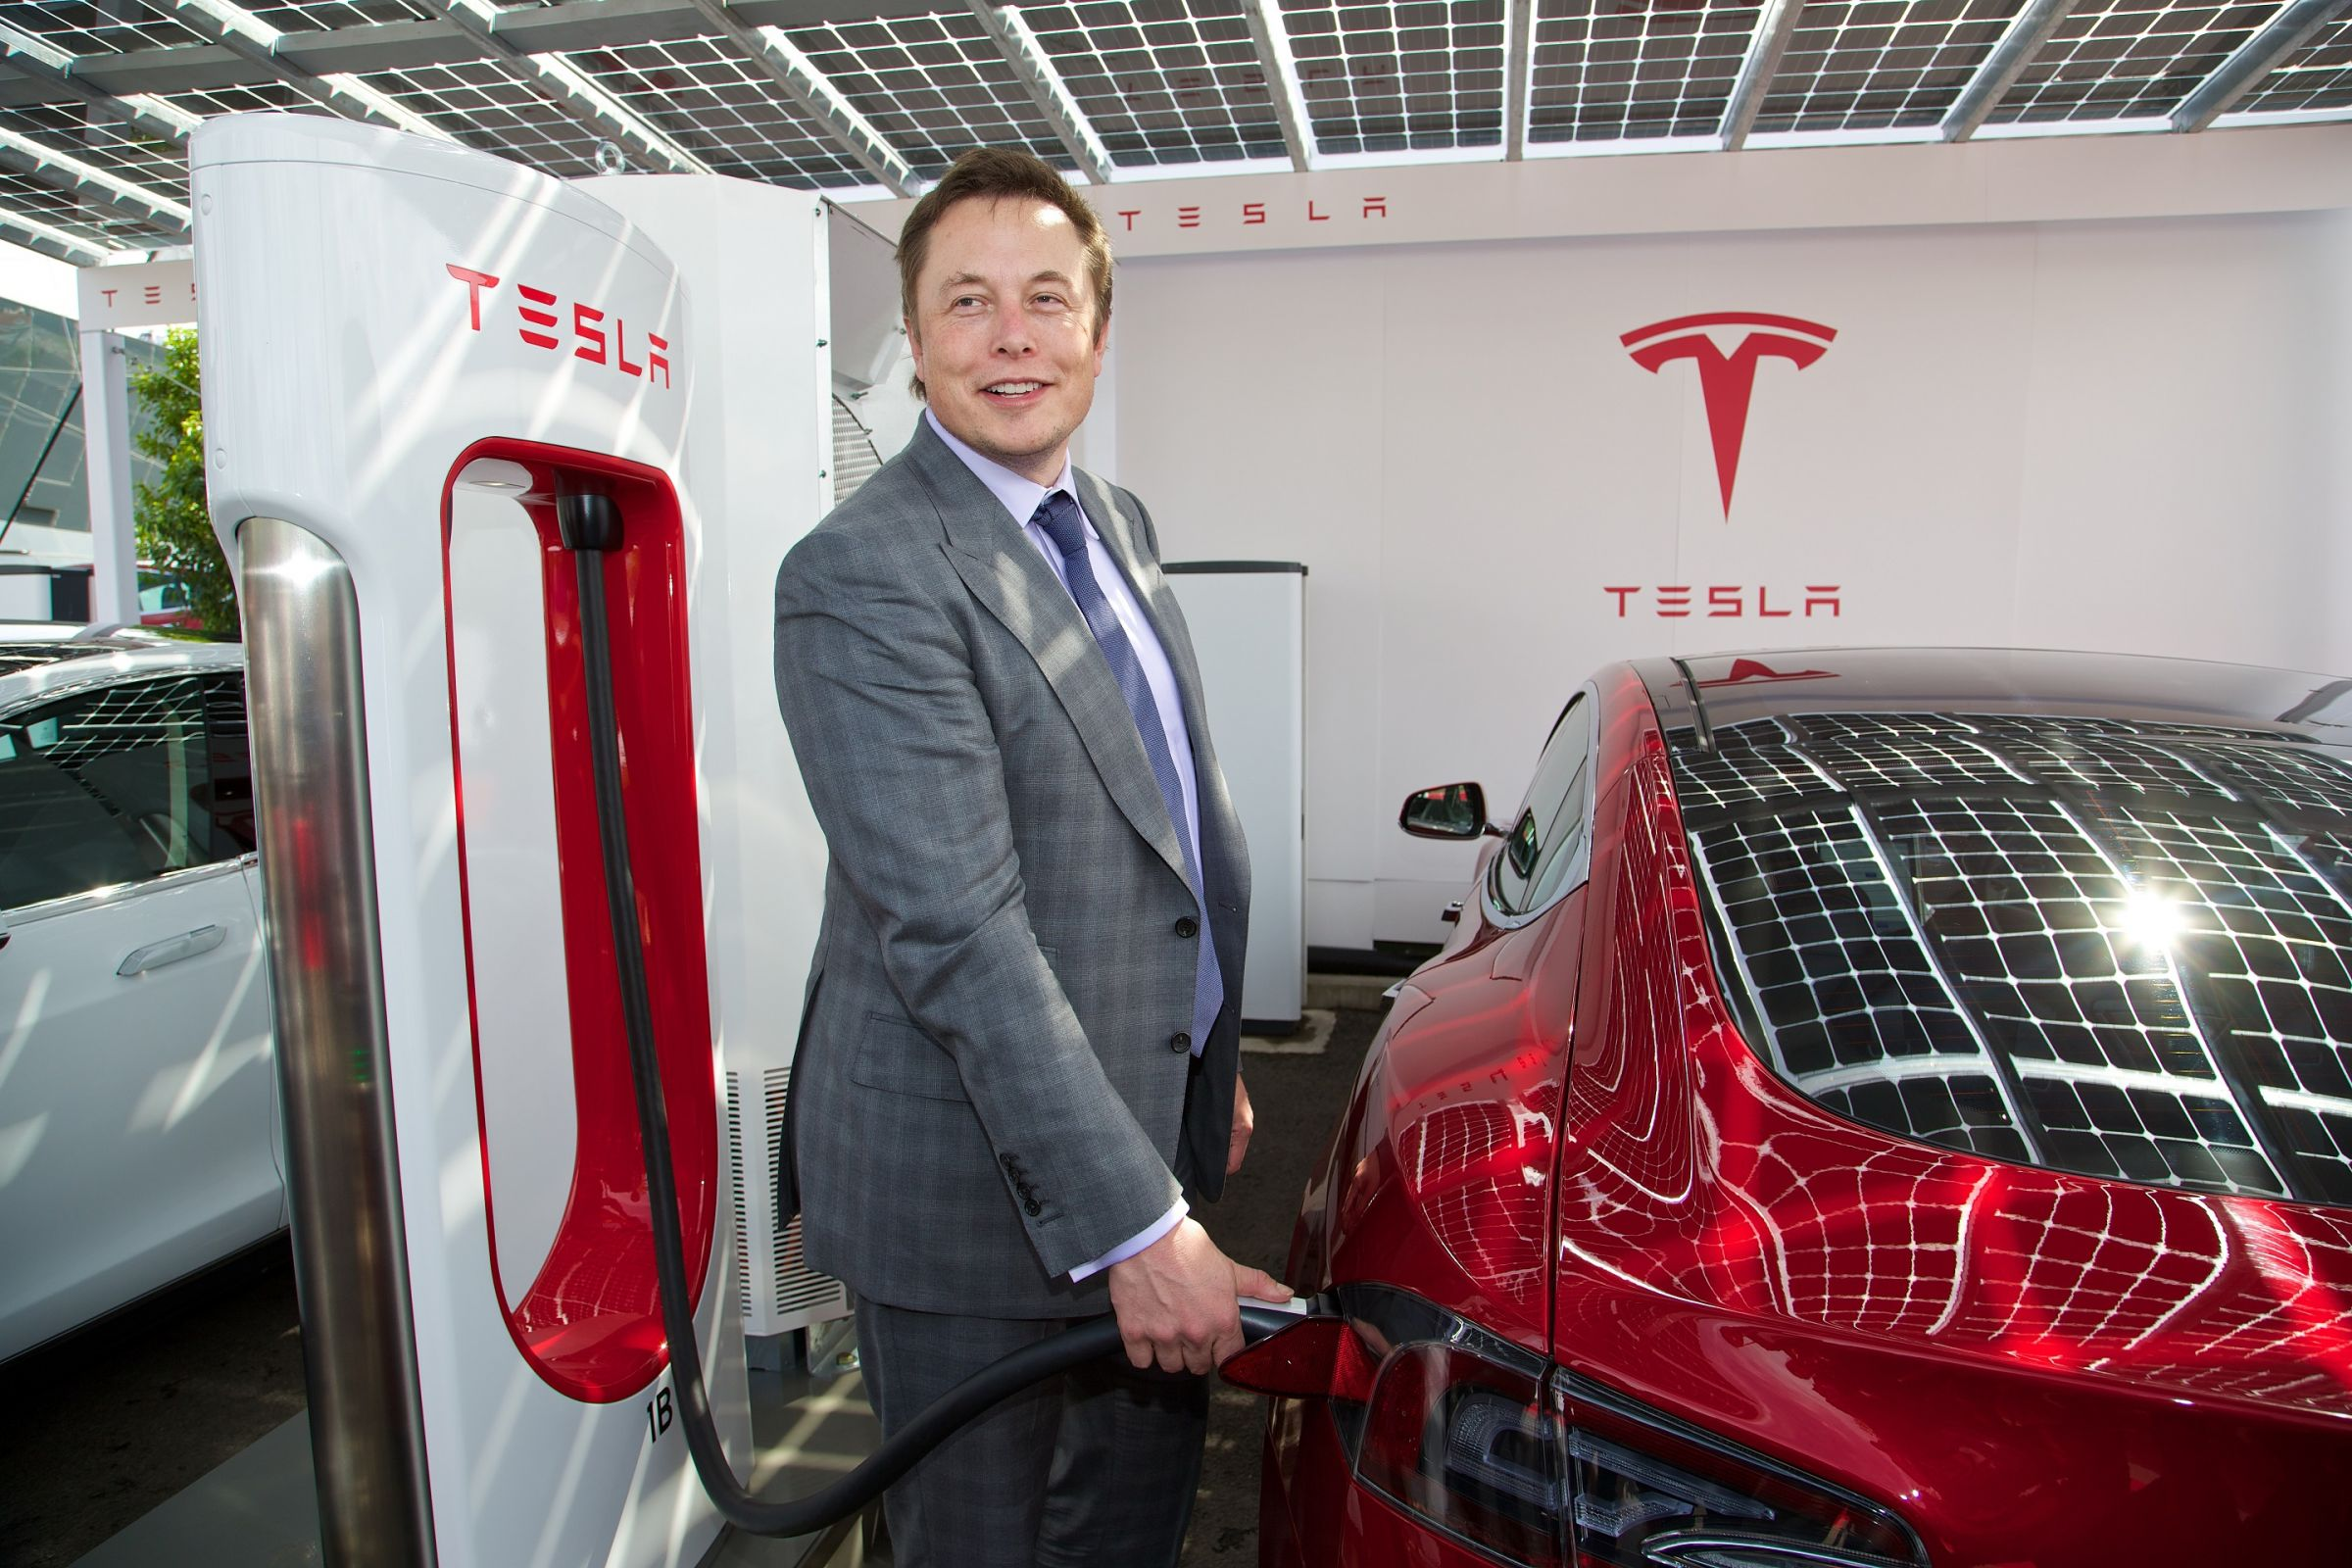 Tesla CEO Elon Musk at first UK Supercharger